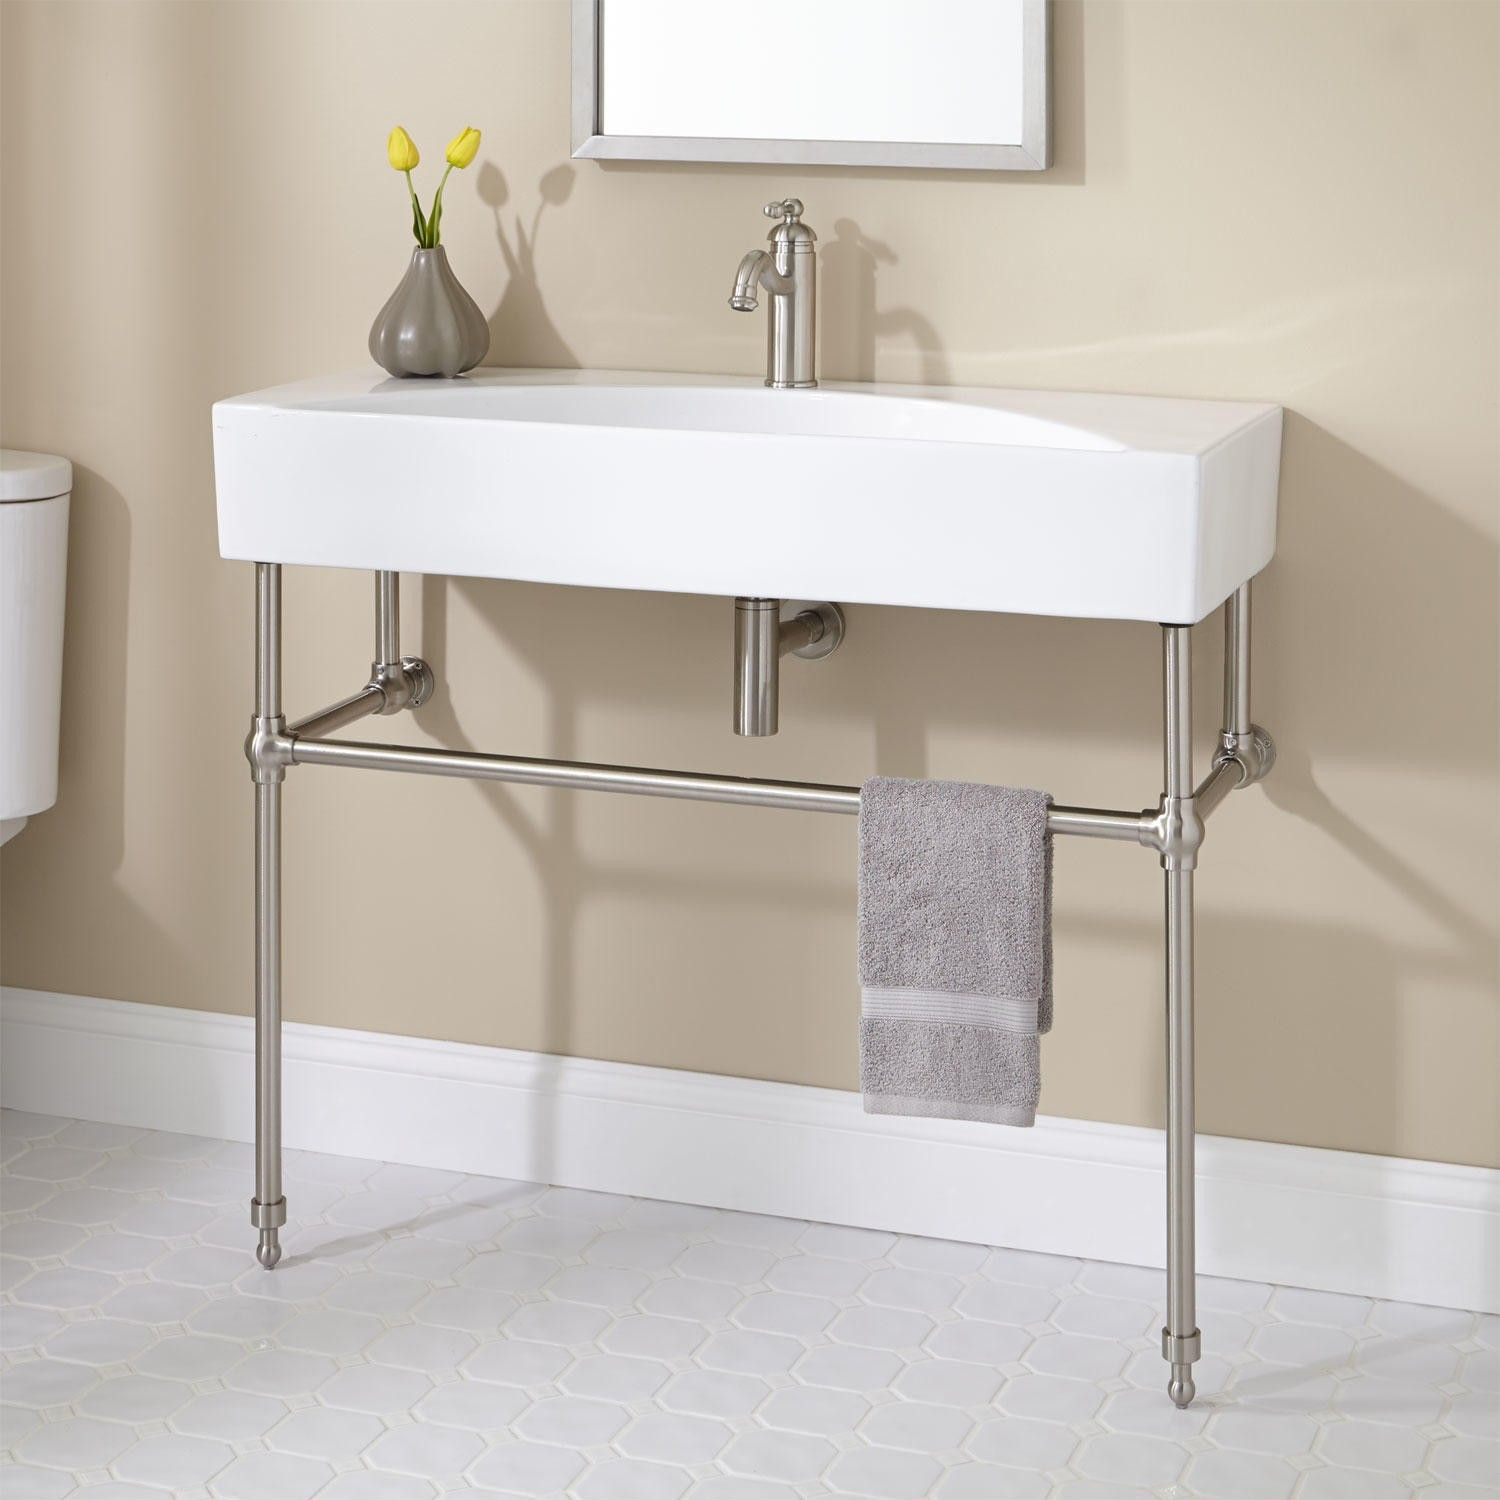 Zita Console Sink with Brass Stand  Console Sinks